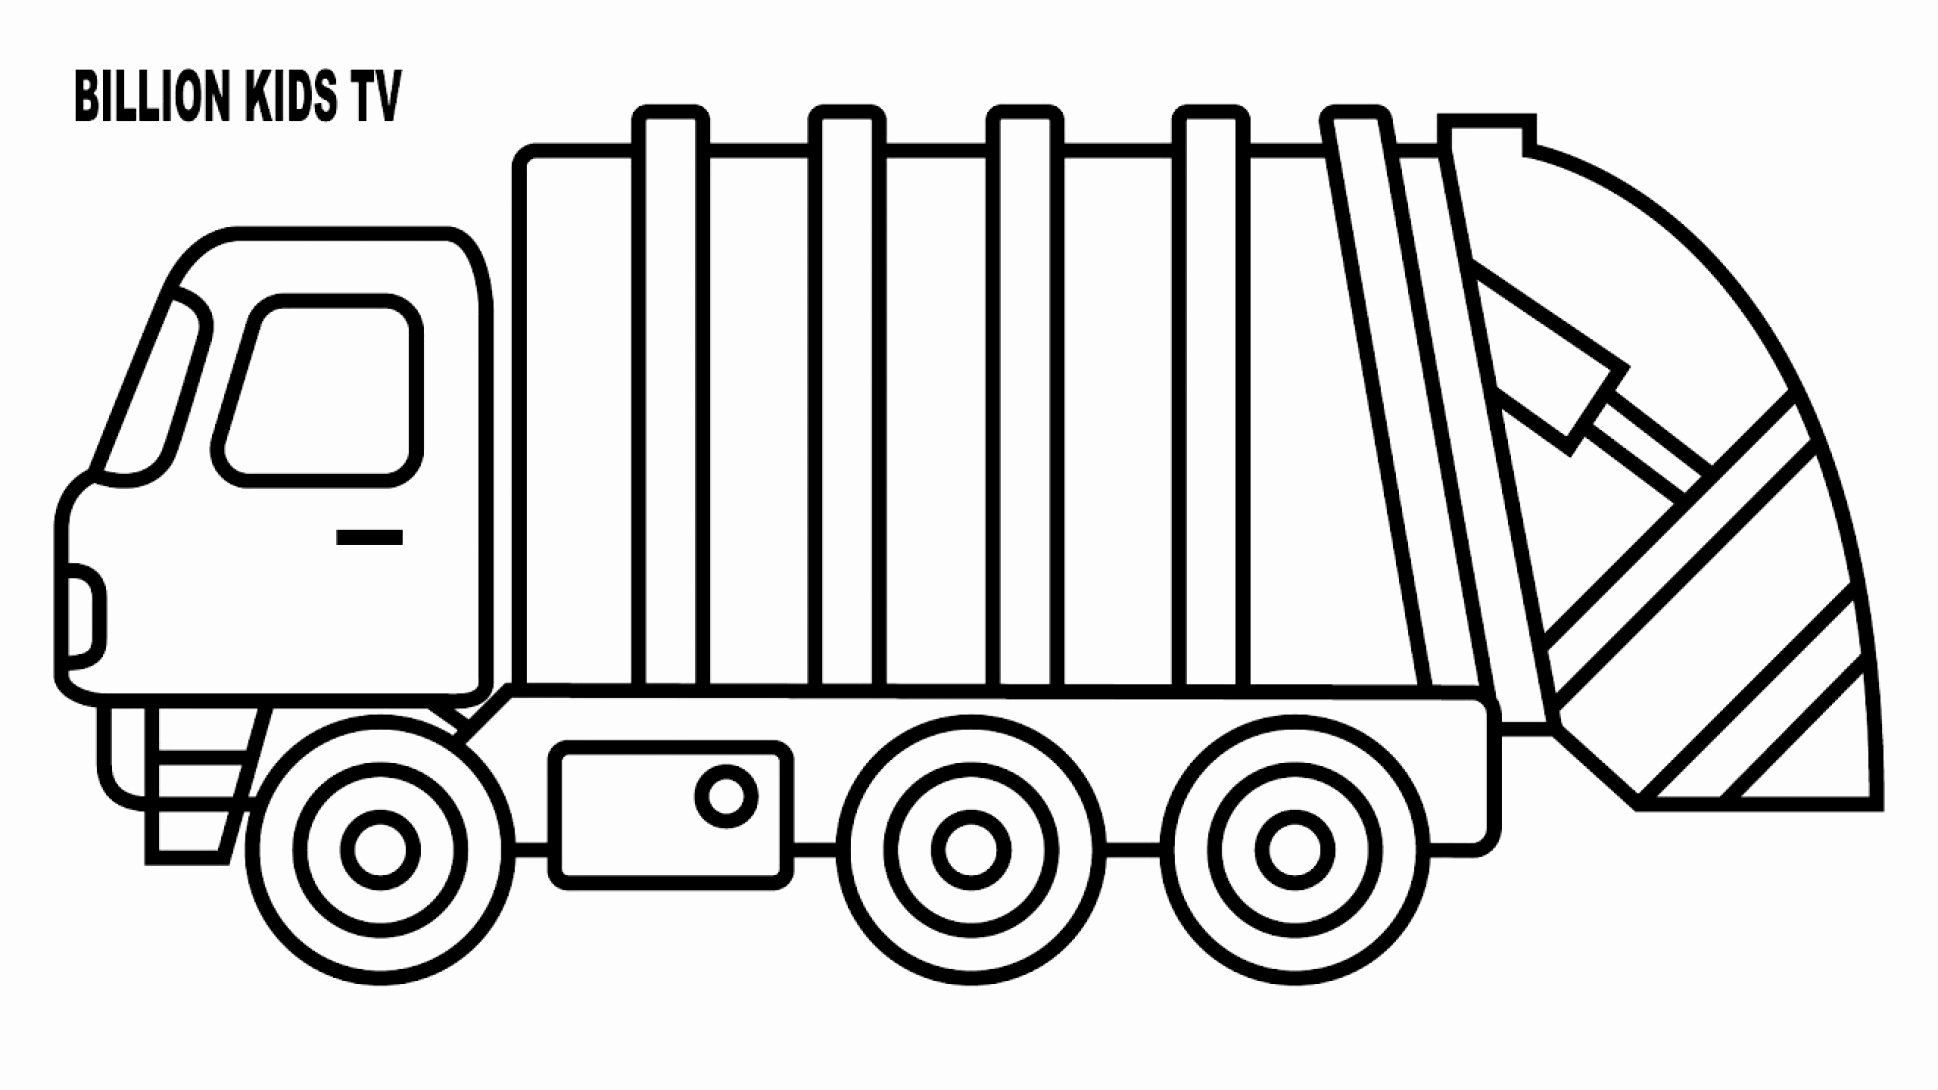 garbage truck drawing patent us20080317568 garbage truck and self contained drawing garbage truck